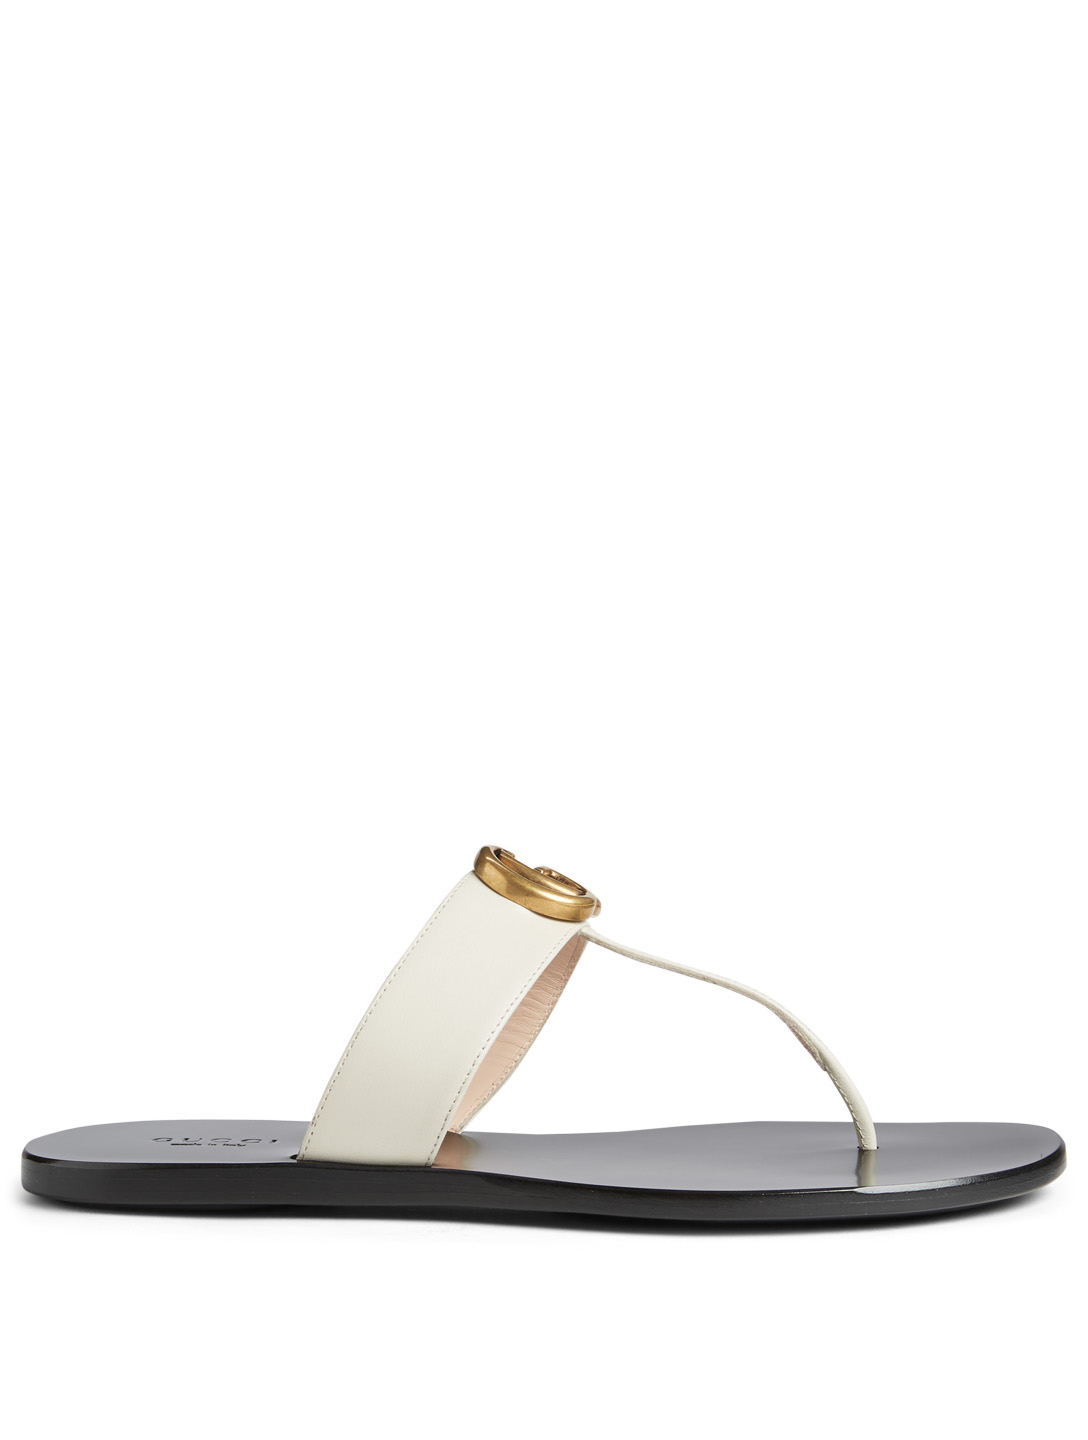 991ed8697 GUCCI Marmont Leather Thong Sandals Women s White ...